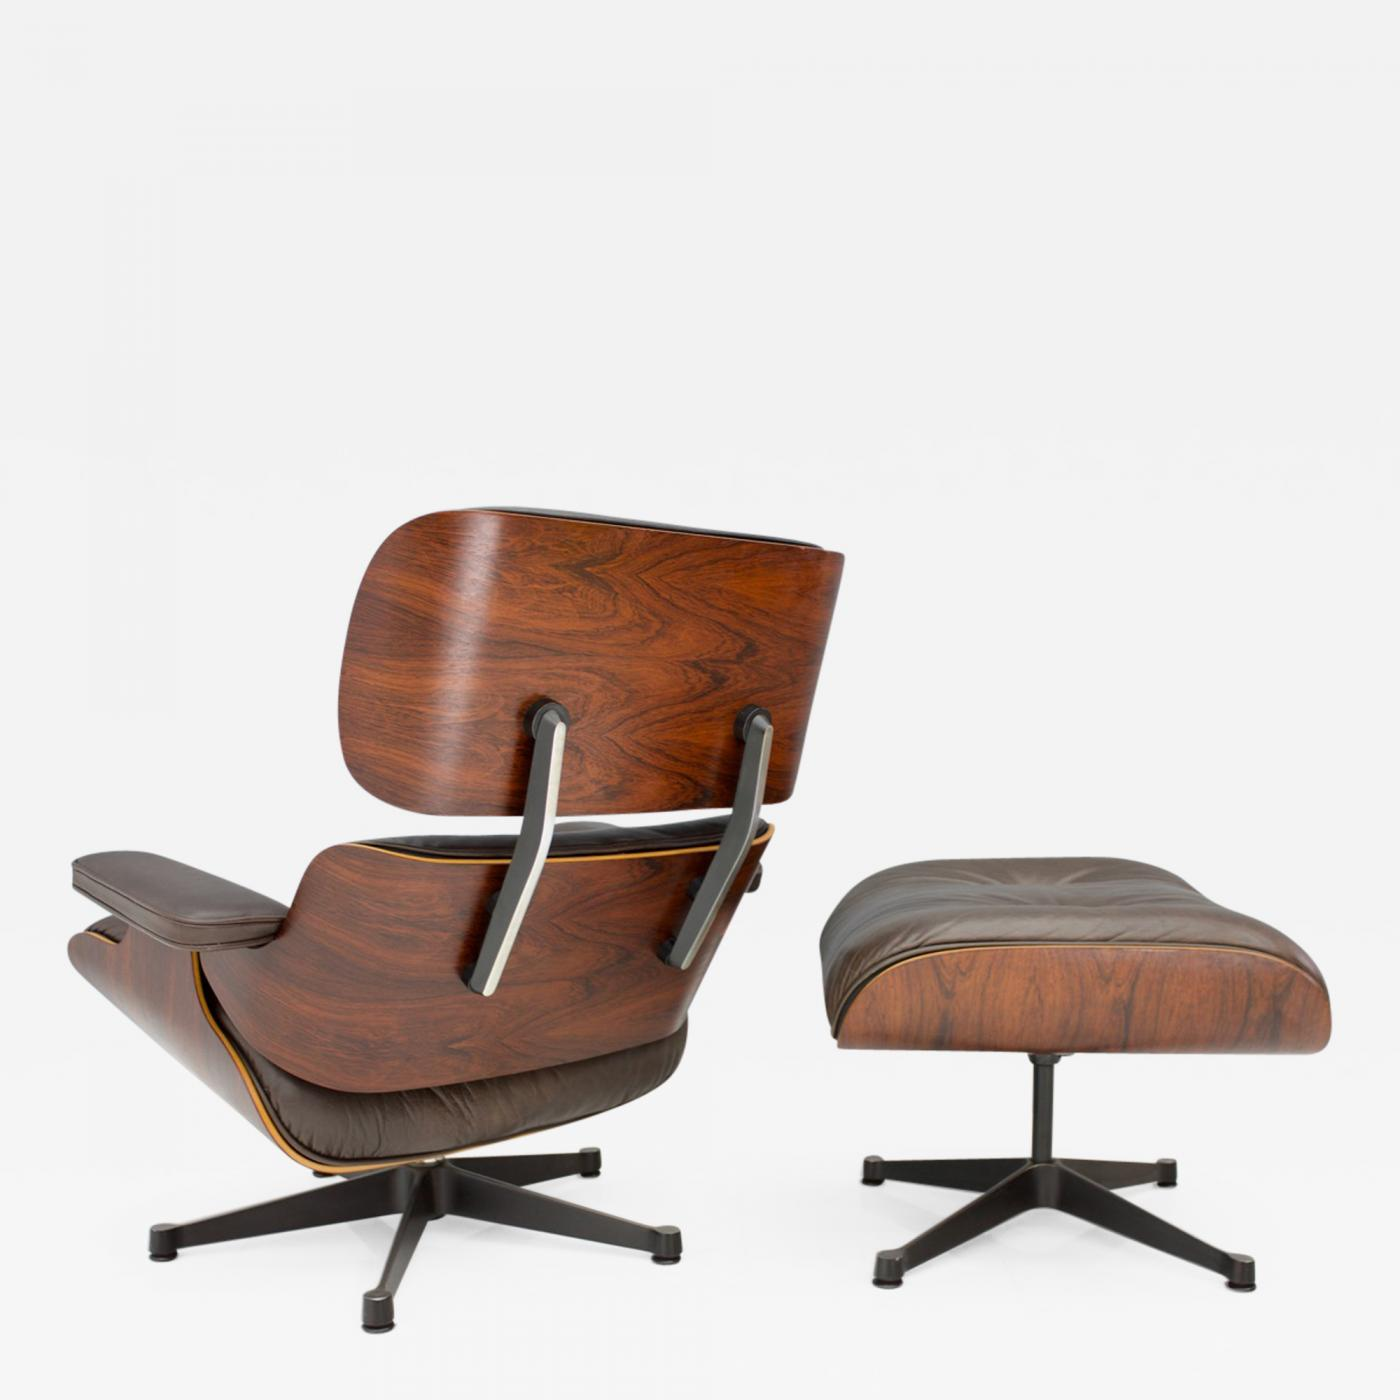 Ray And Charles Eames Charles Ray Eames Charles Eames Lounge Chair With Ottoman In Chocolate Brown Leather